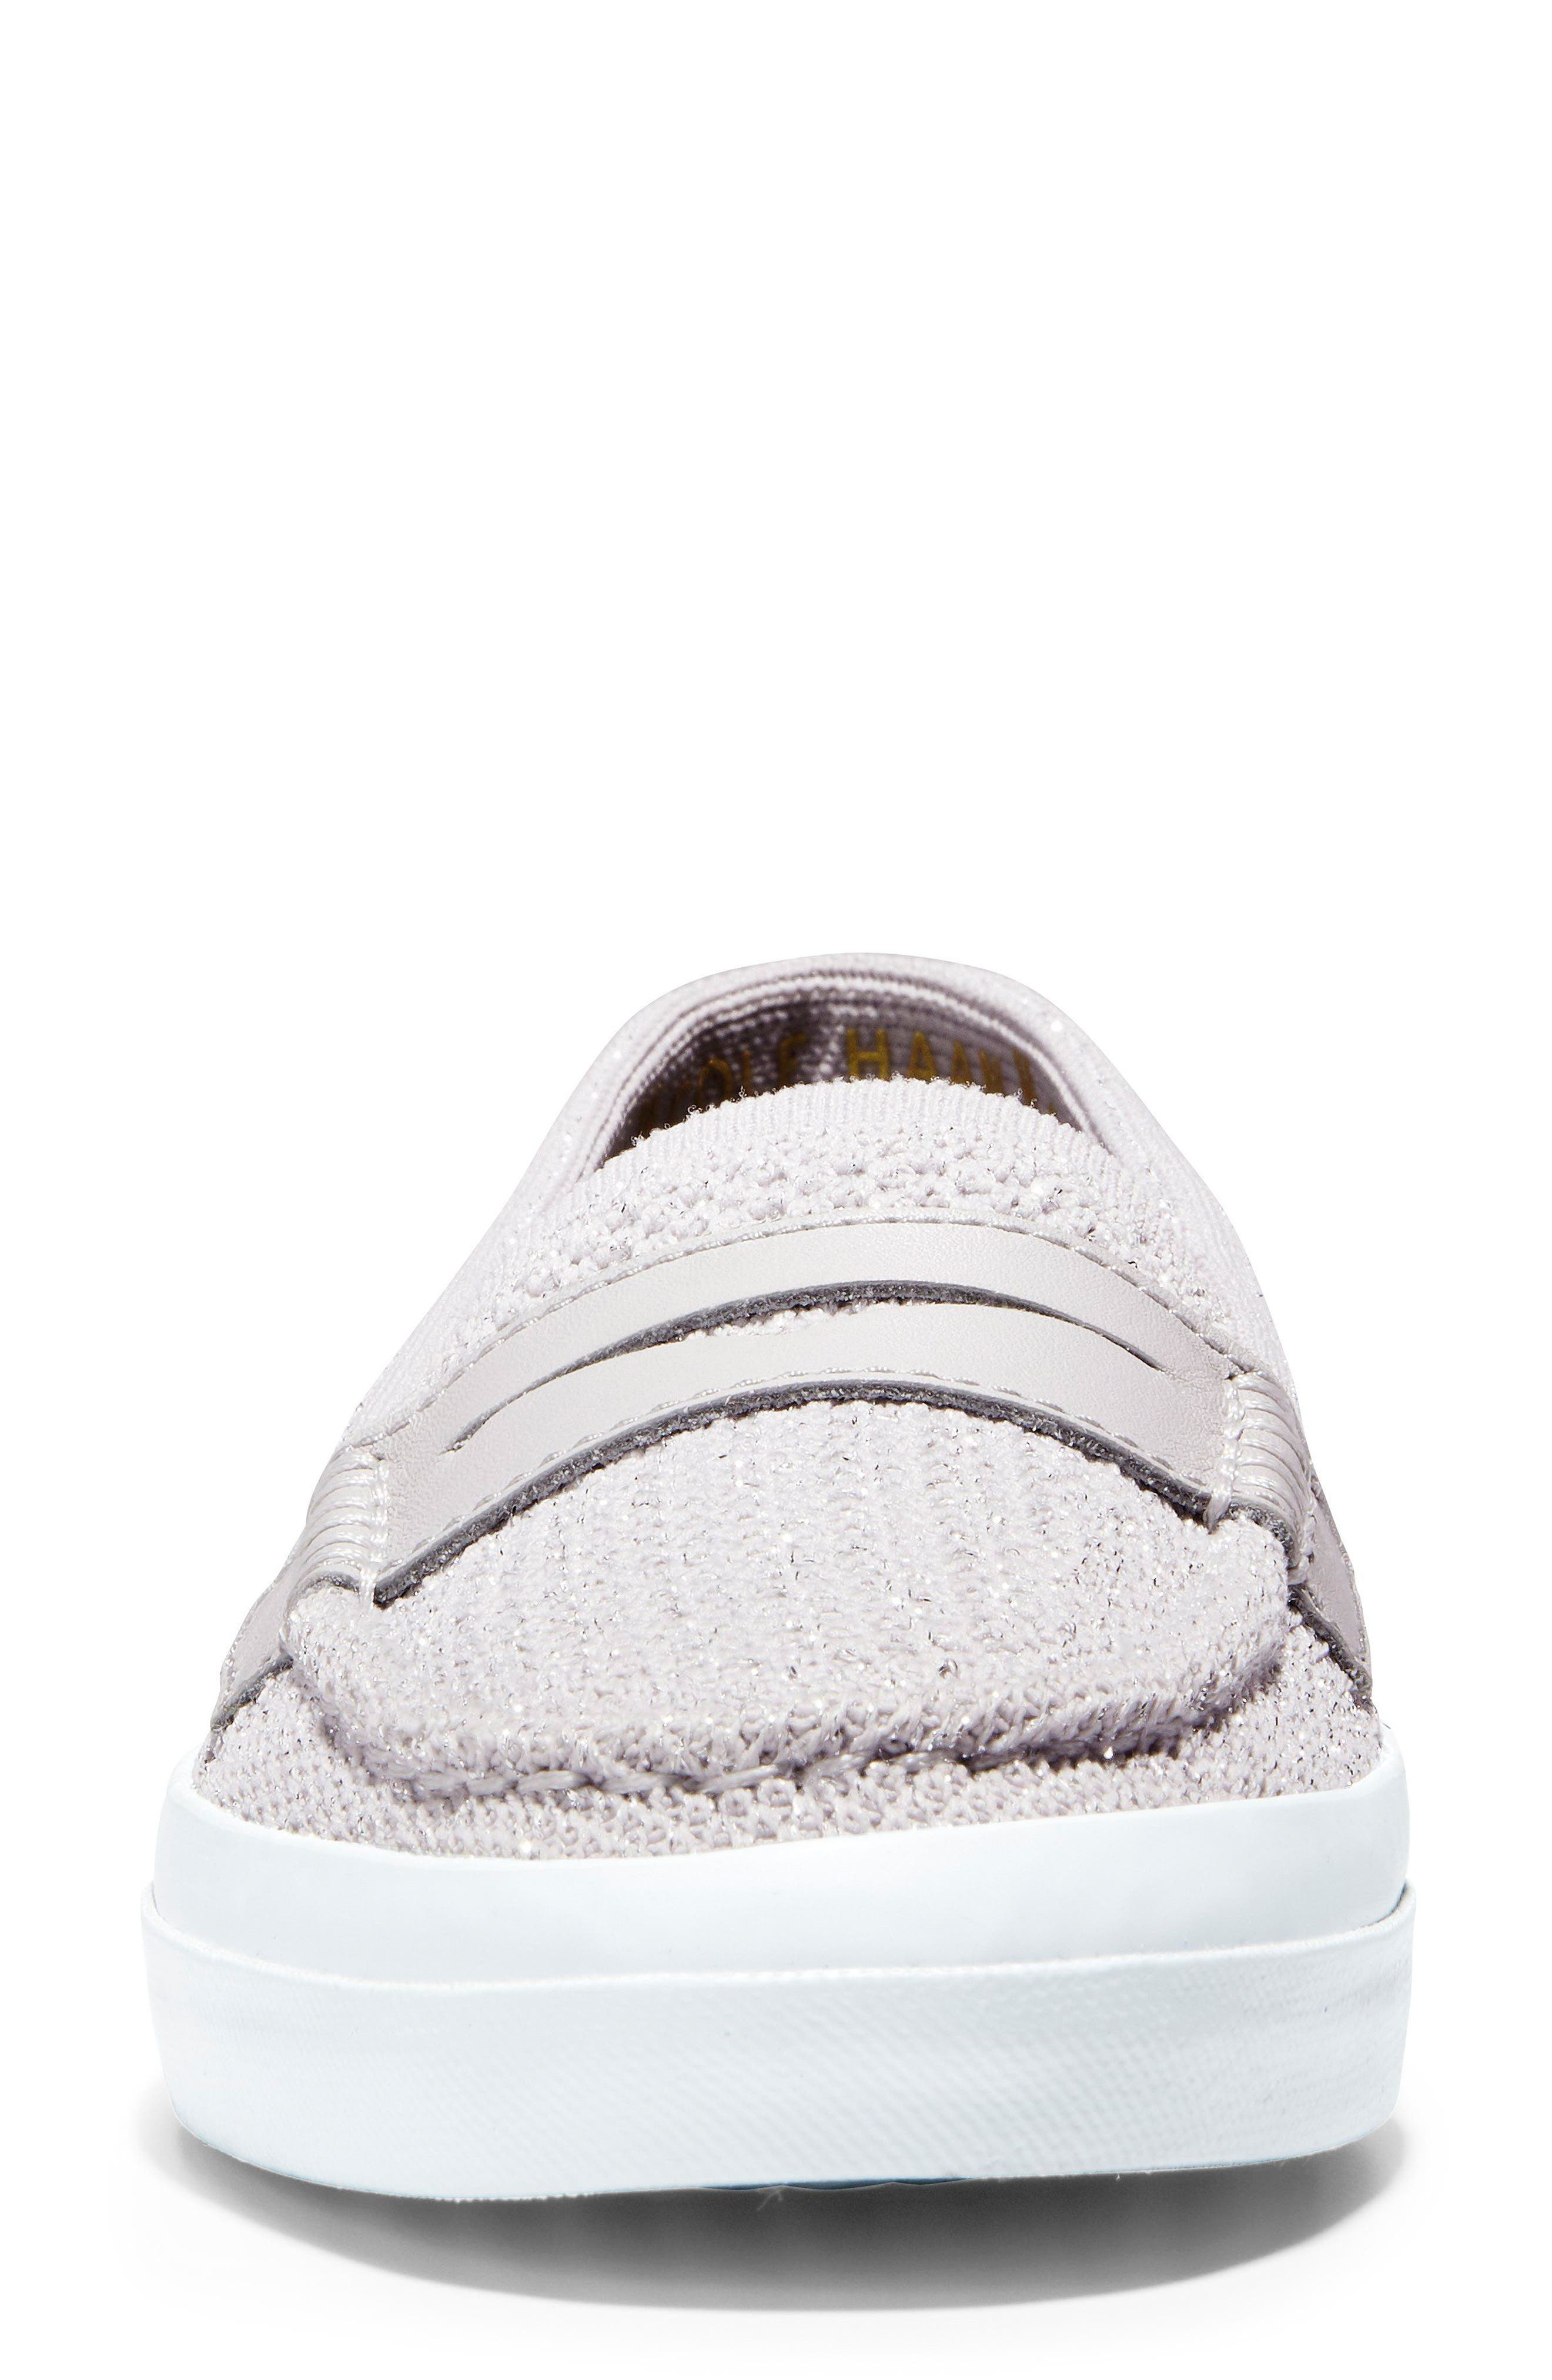 Pinch Stitchlite<sup>™</sup> Loafer,                             Alternate thumbnail 4, color,                             SILVER/ WHITE LEATHER